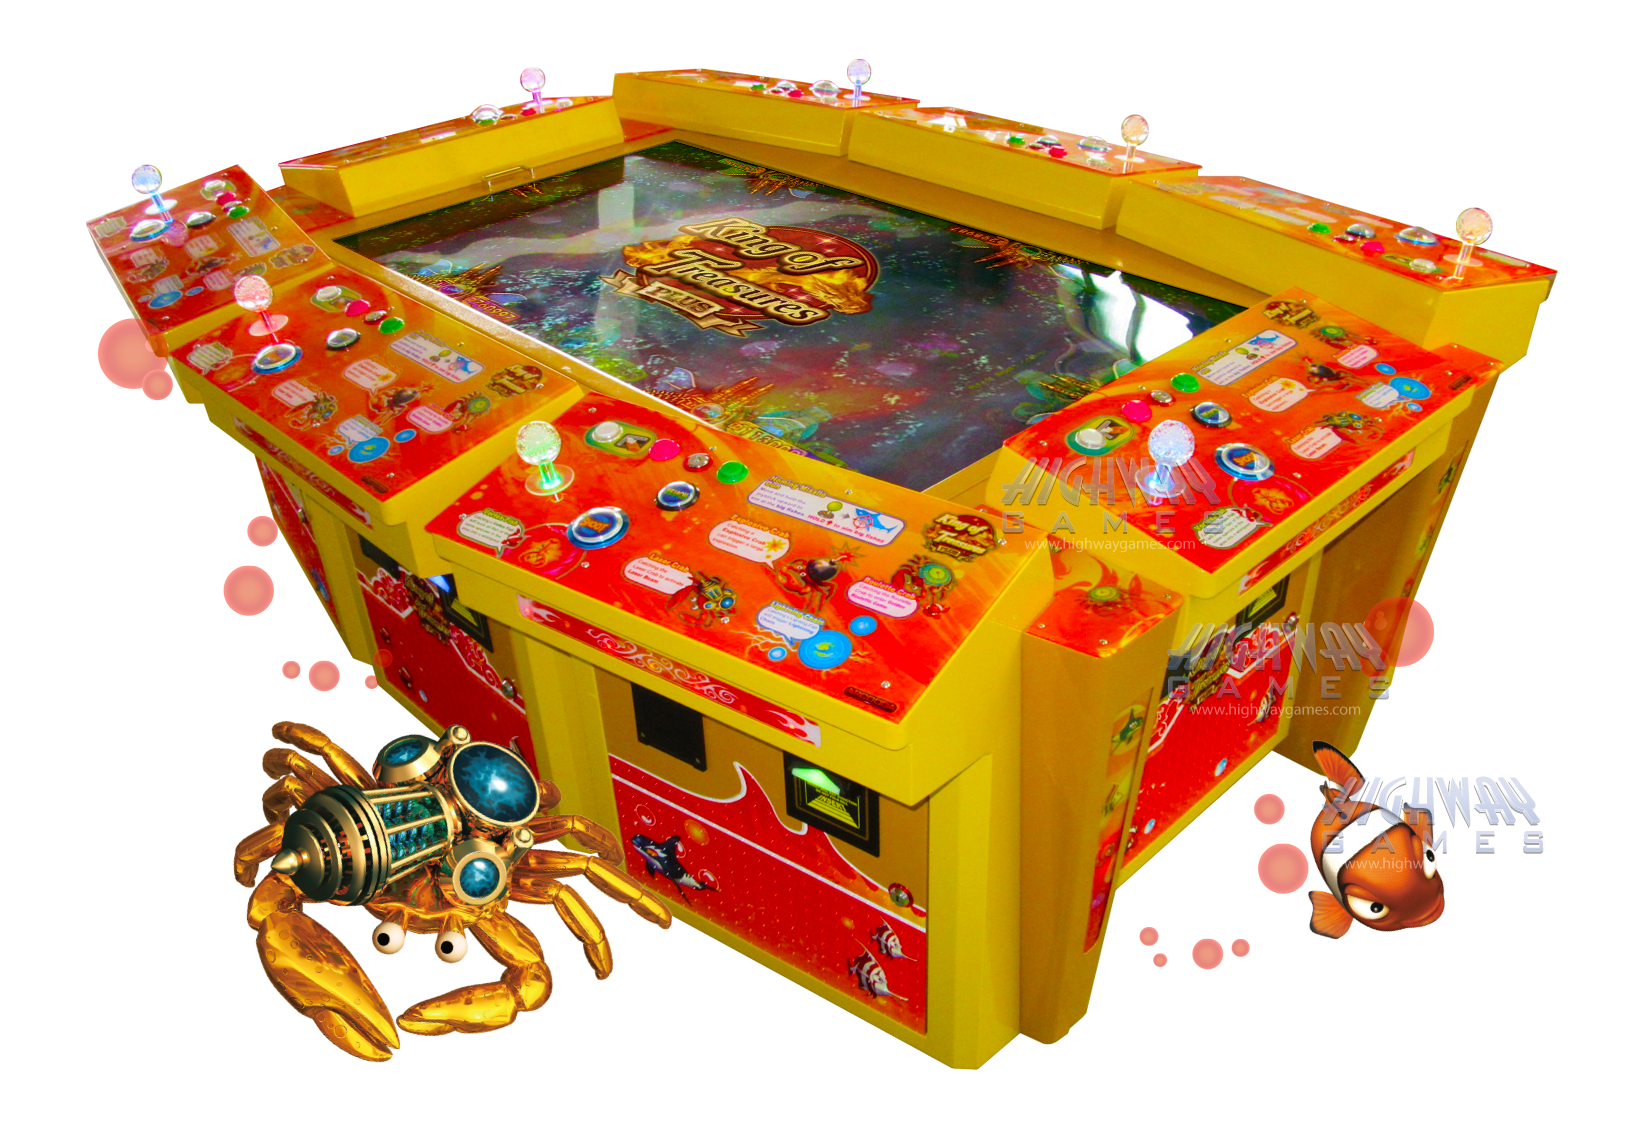 King-of-treasures-plus-arcade-machine-featured-view